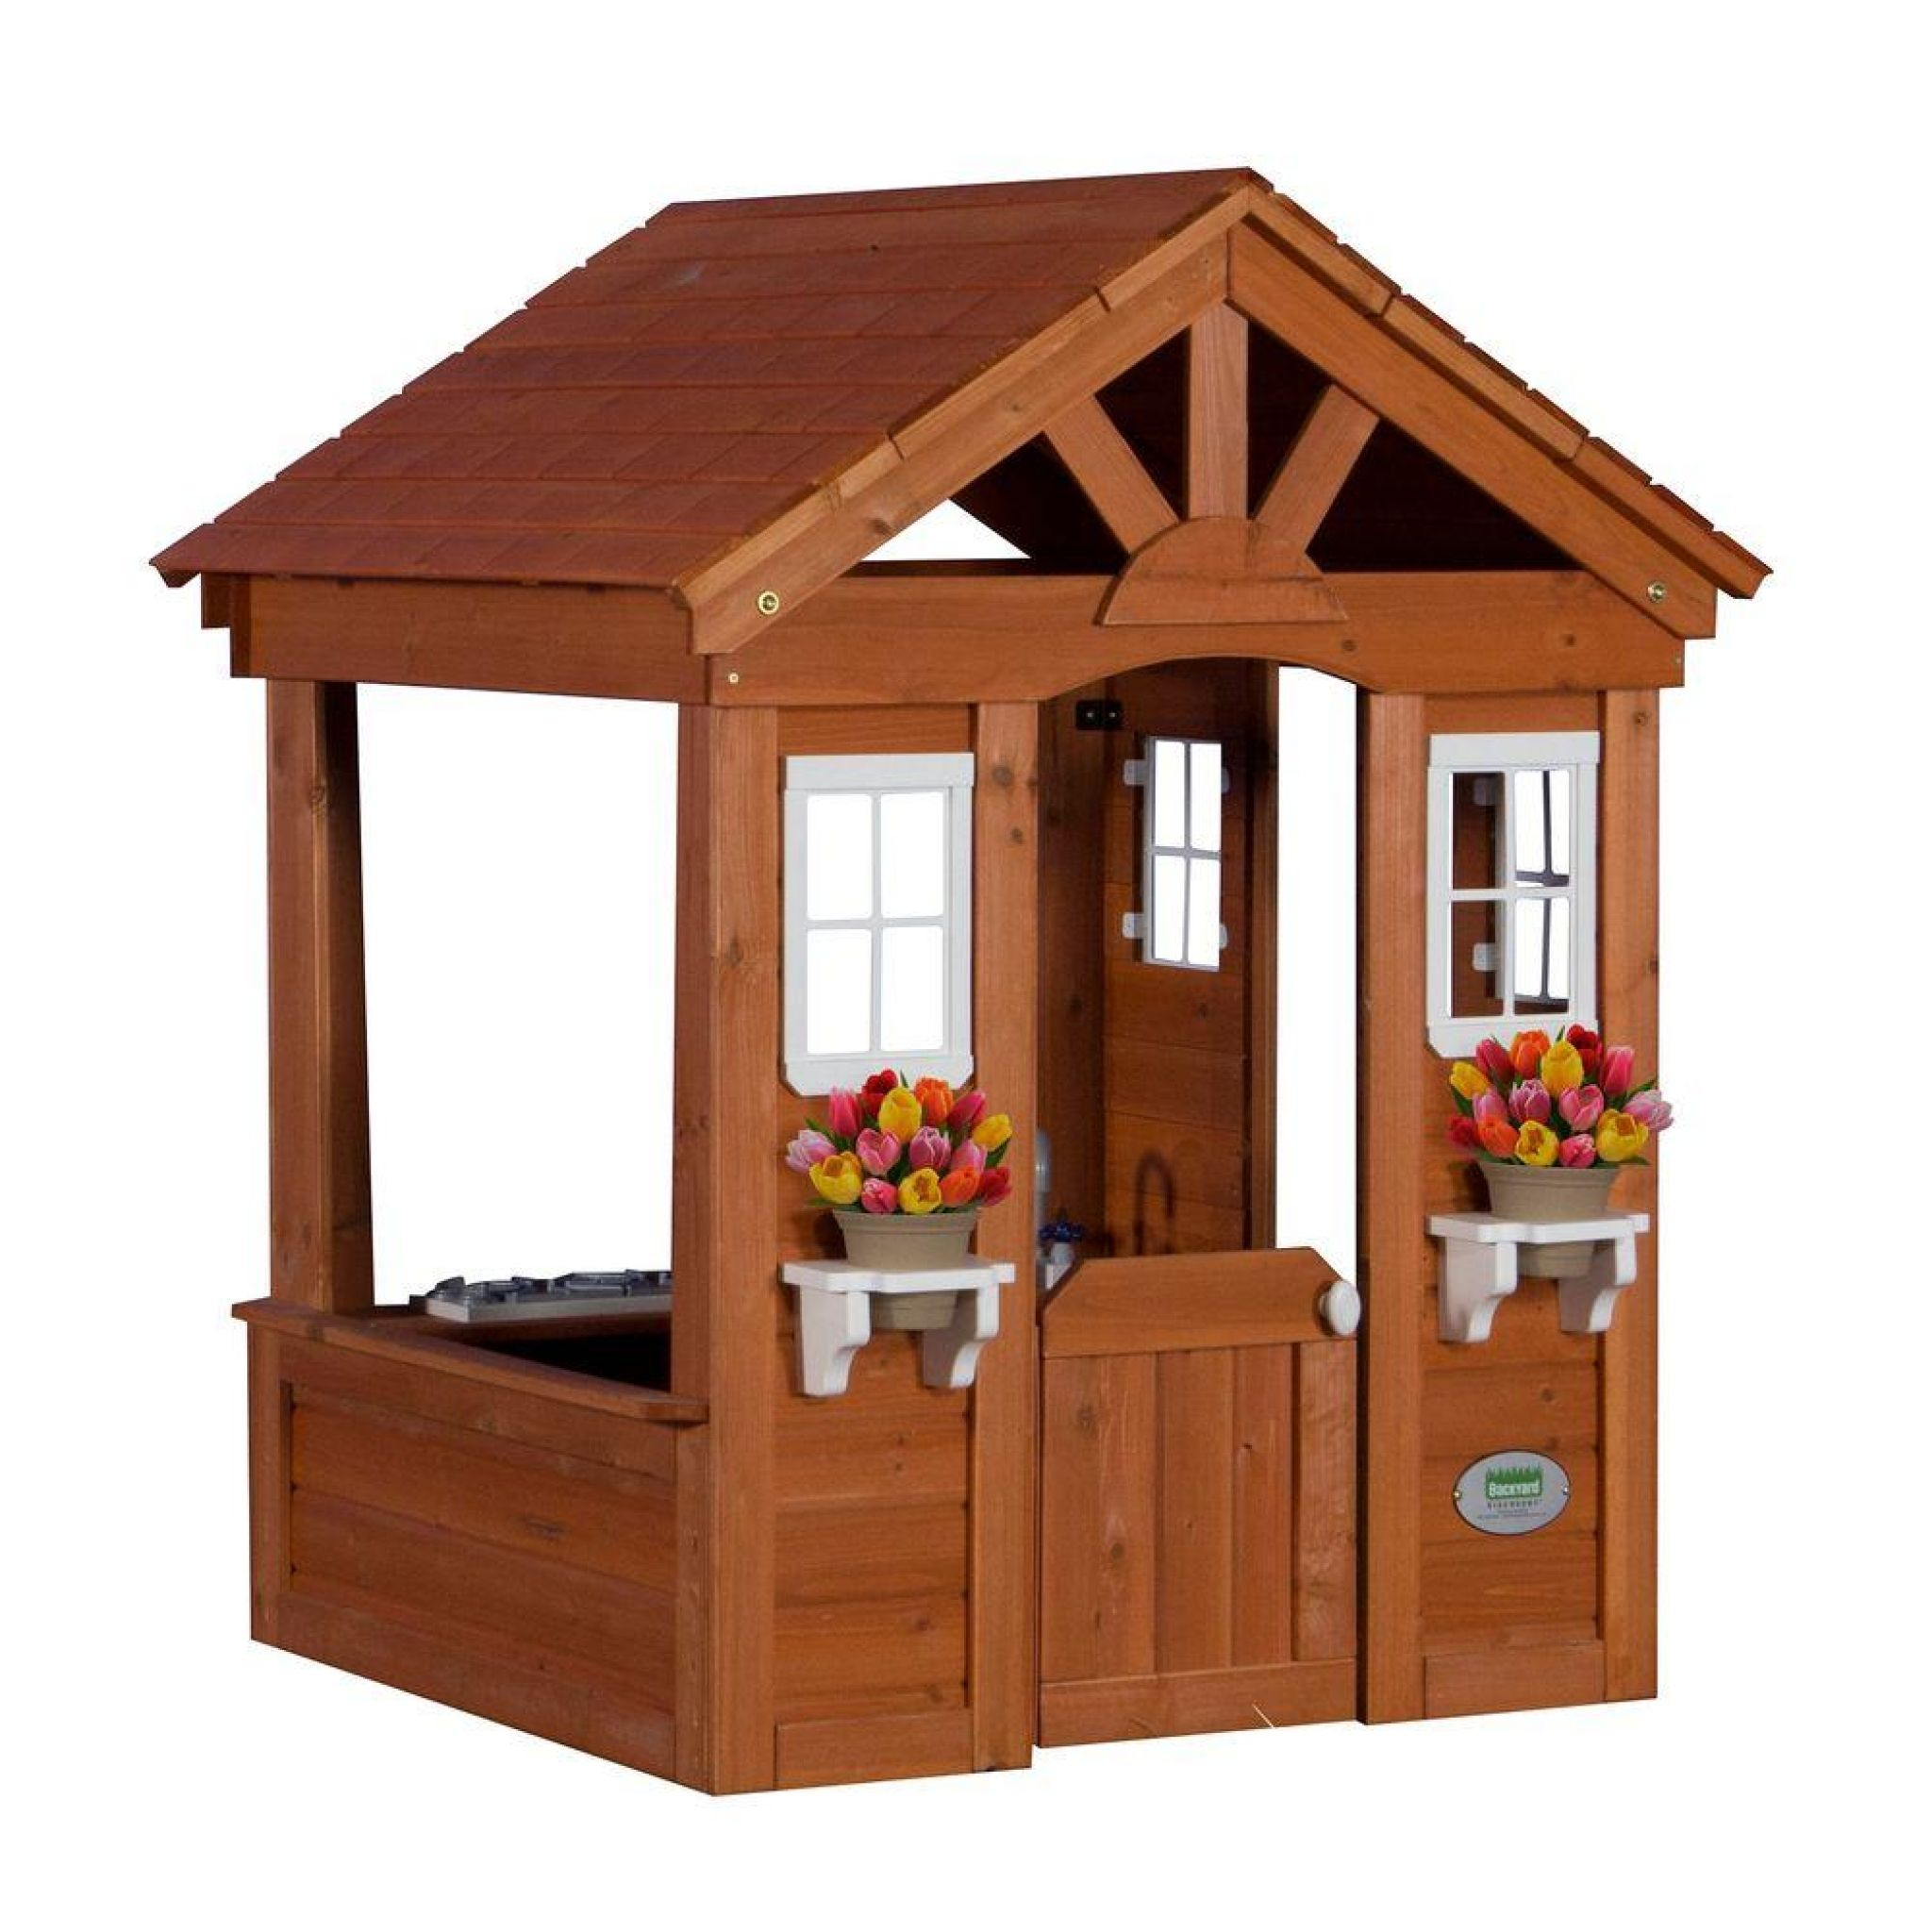 Gentil Outdoor Playhouse With Kitchen   Best Interior Paint Brand Check More At